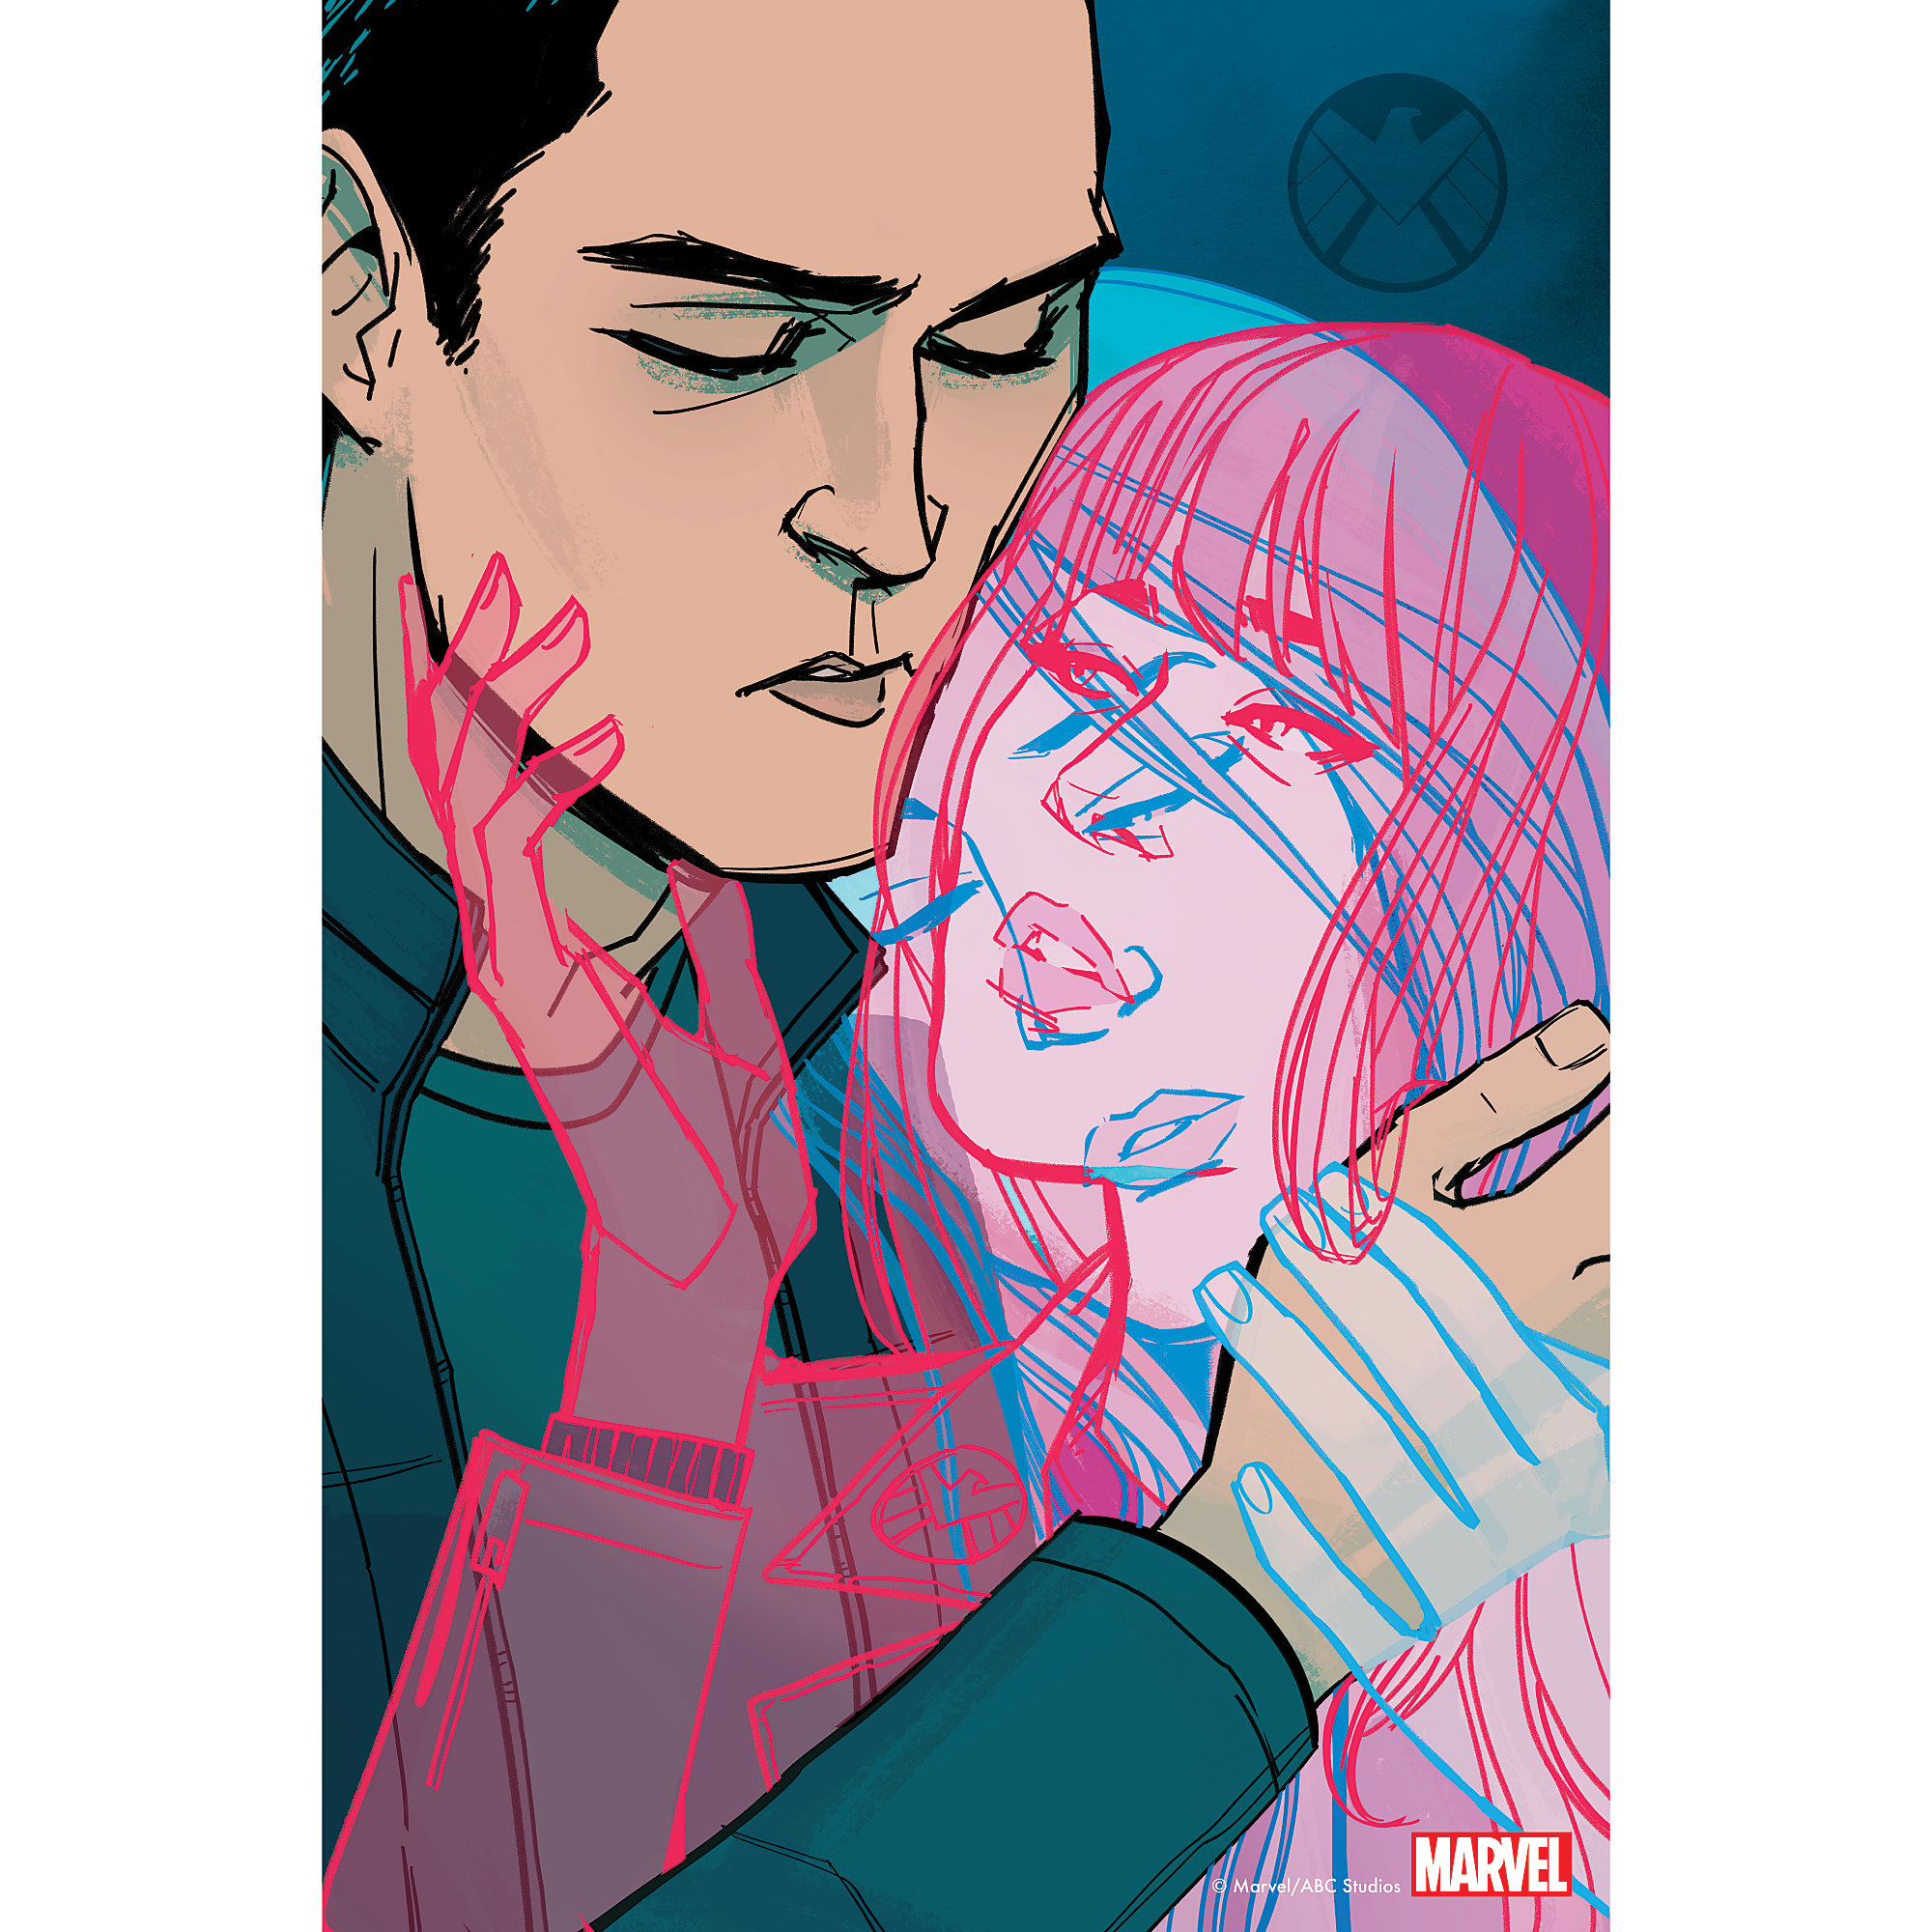 Marvel's Agents of S.H.I.E.L.D. ''Love In The Time of Hydra'' Print – Limited Edition